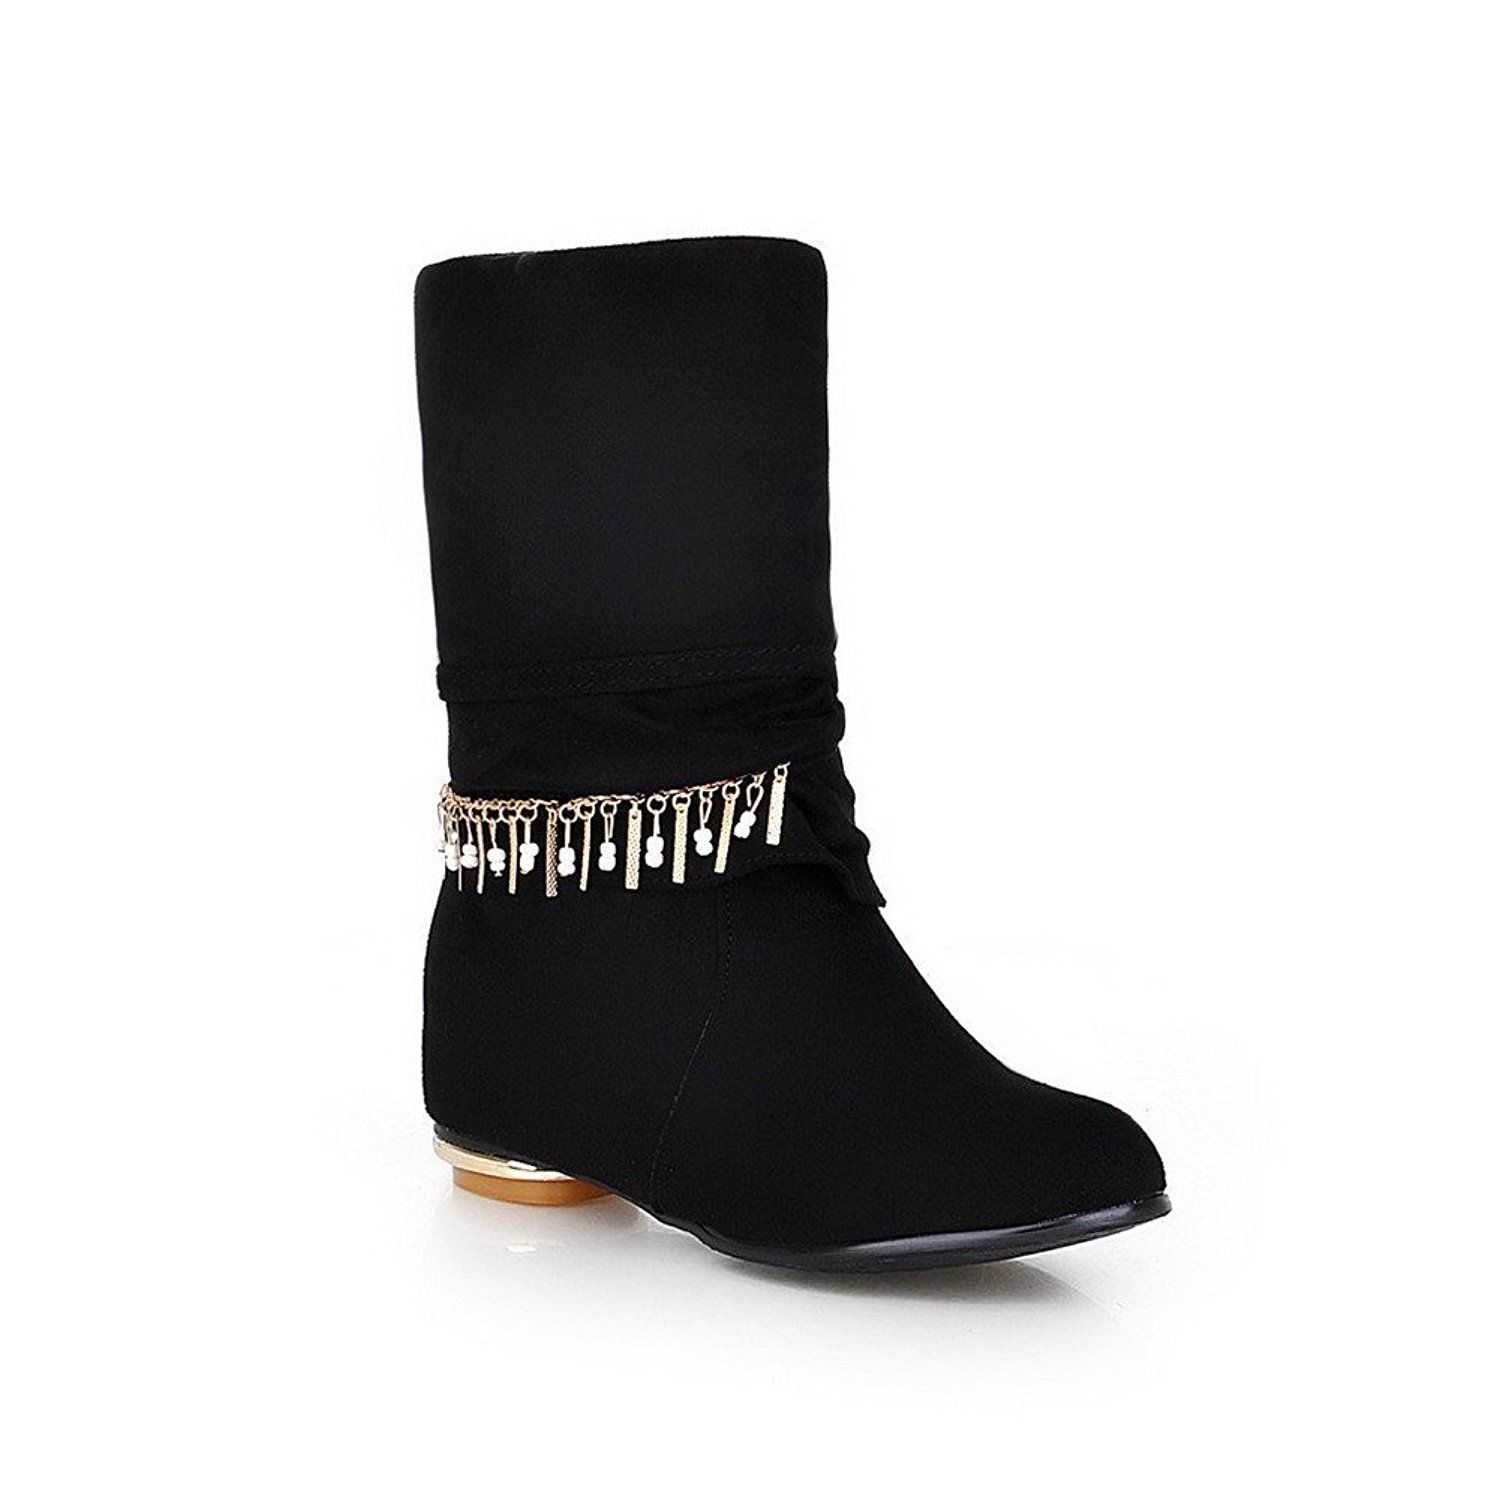 Womens Closed Round Toe Low Heel Imitated Suede Frosted Solid Boots with Metalornament